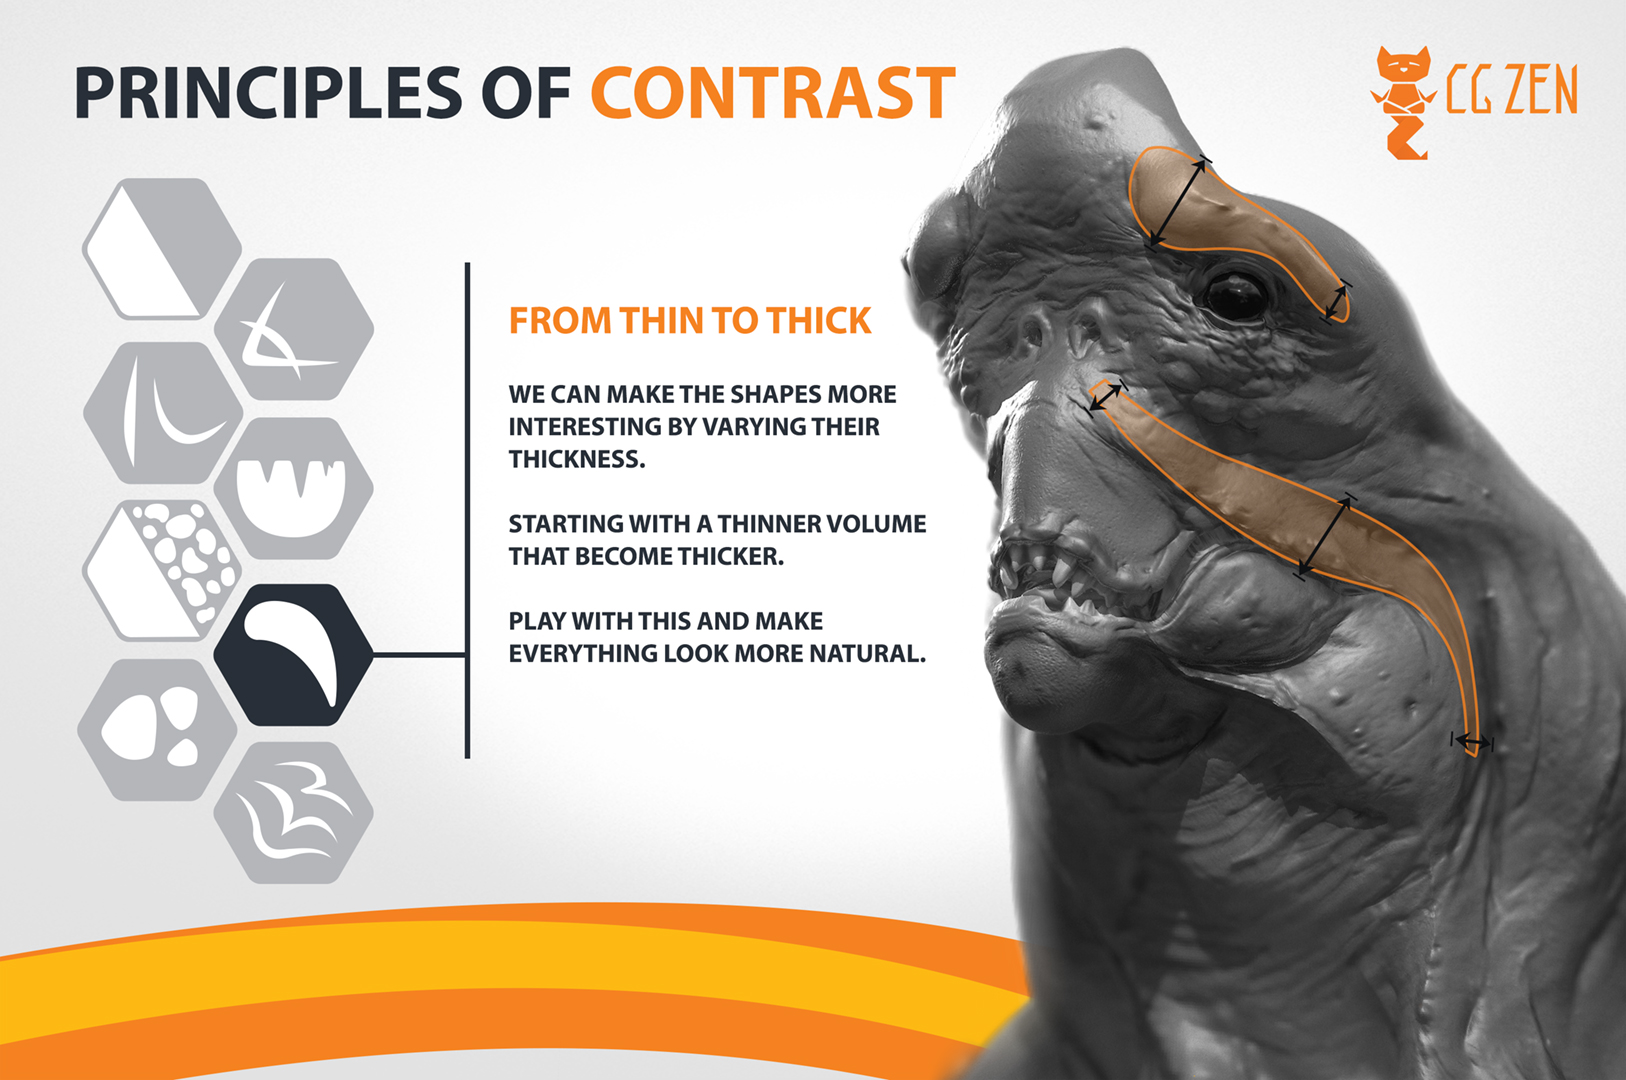 06-contrast-design-thin-to-thick-transition-cgzen-EN